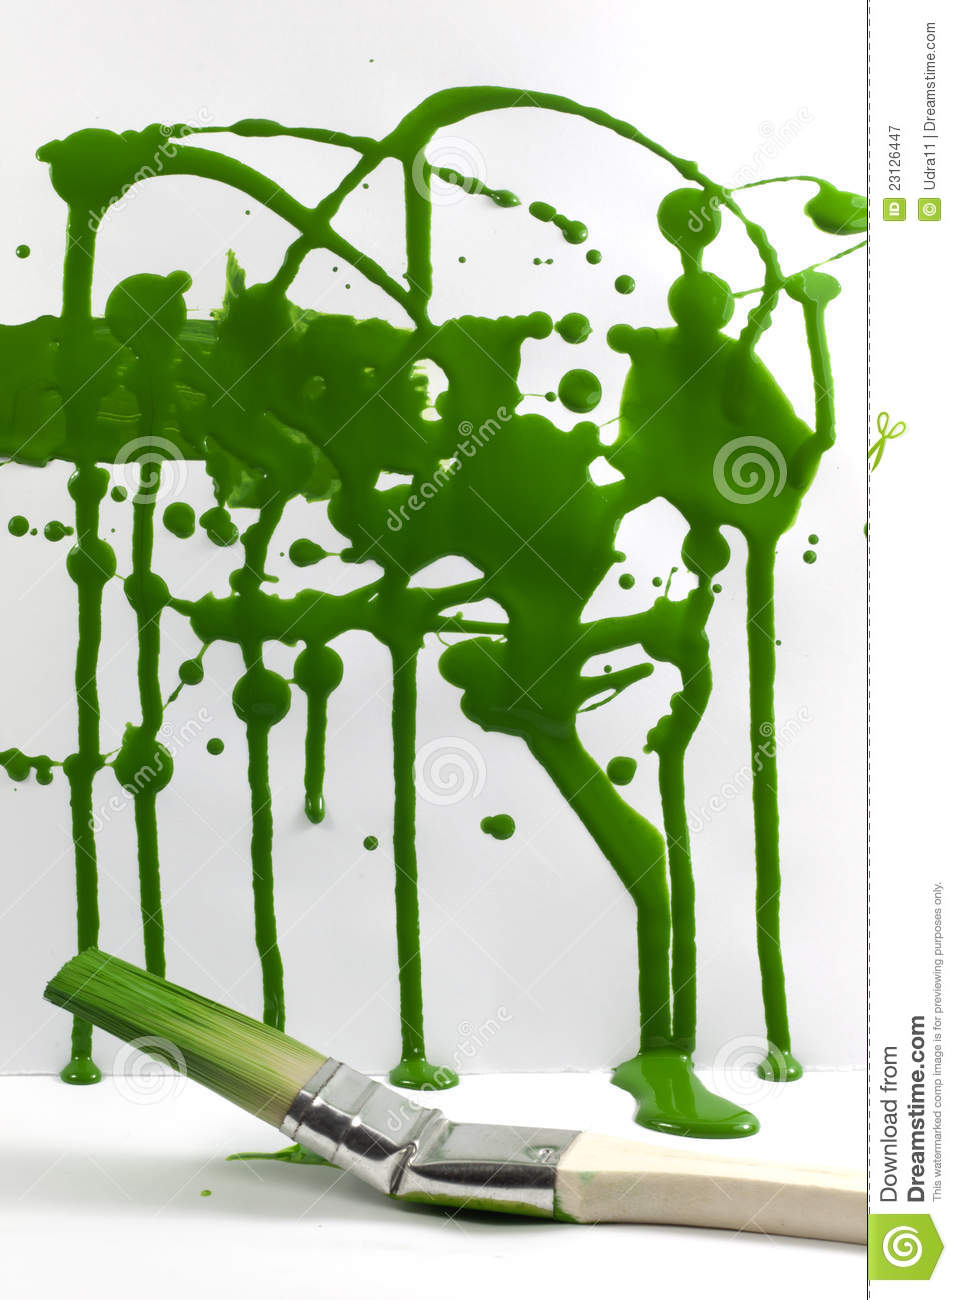 Abstract Messy Painting Green Background Stock Image ...